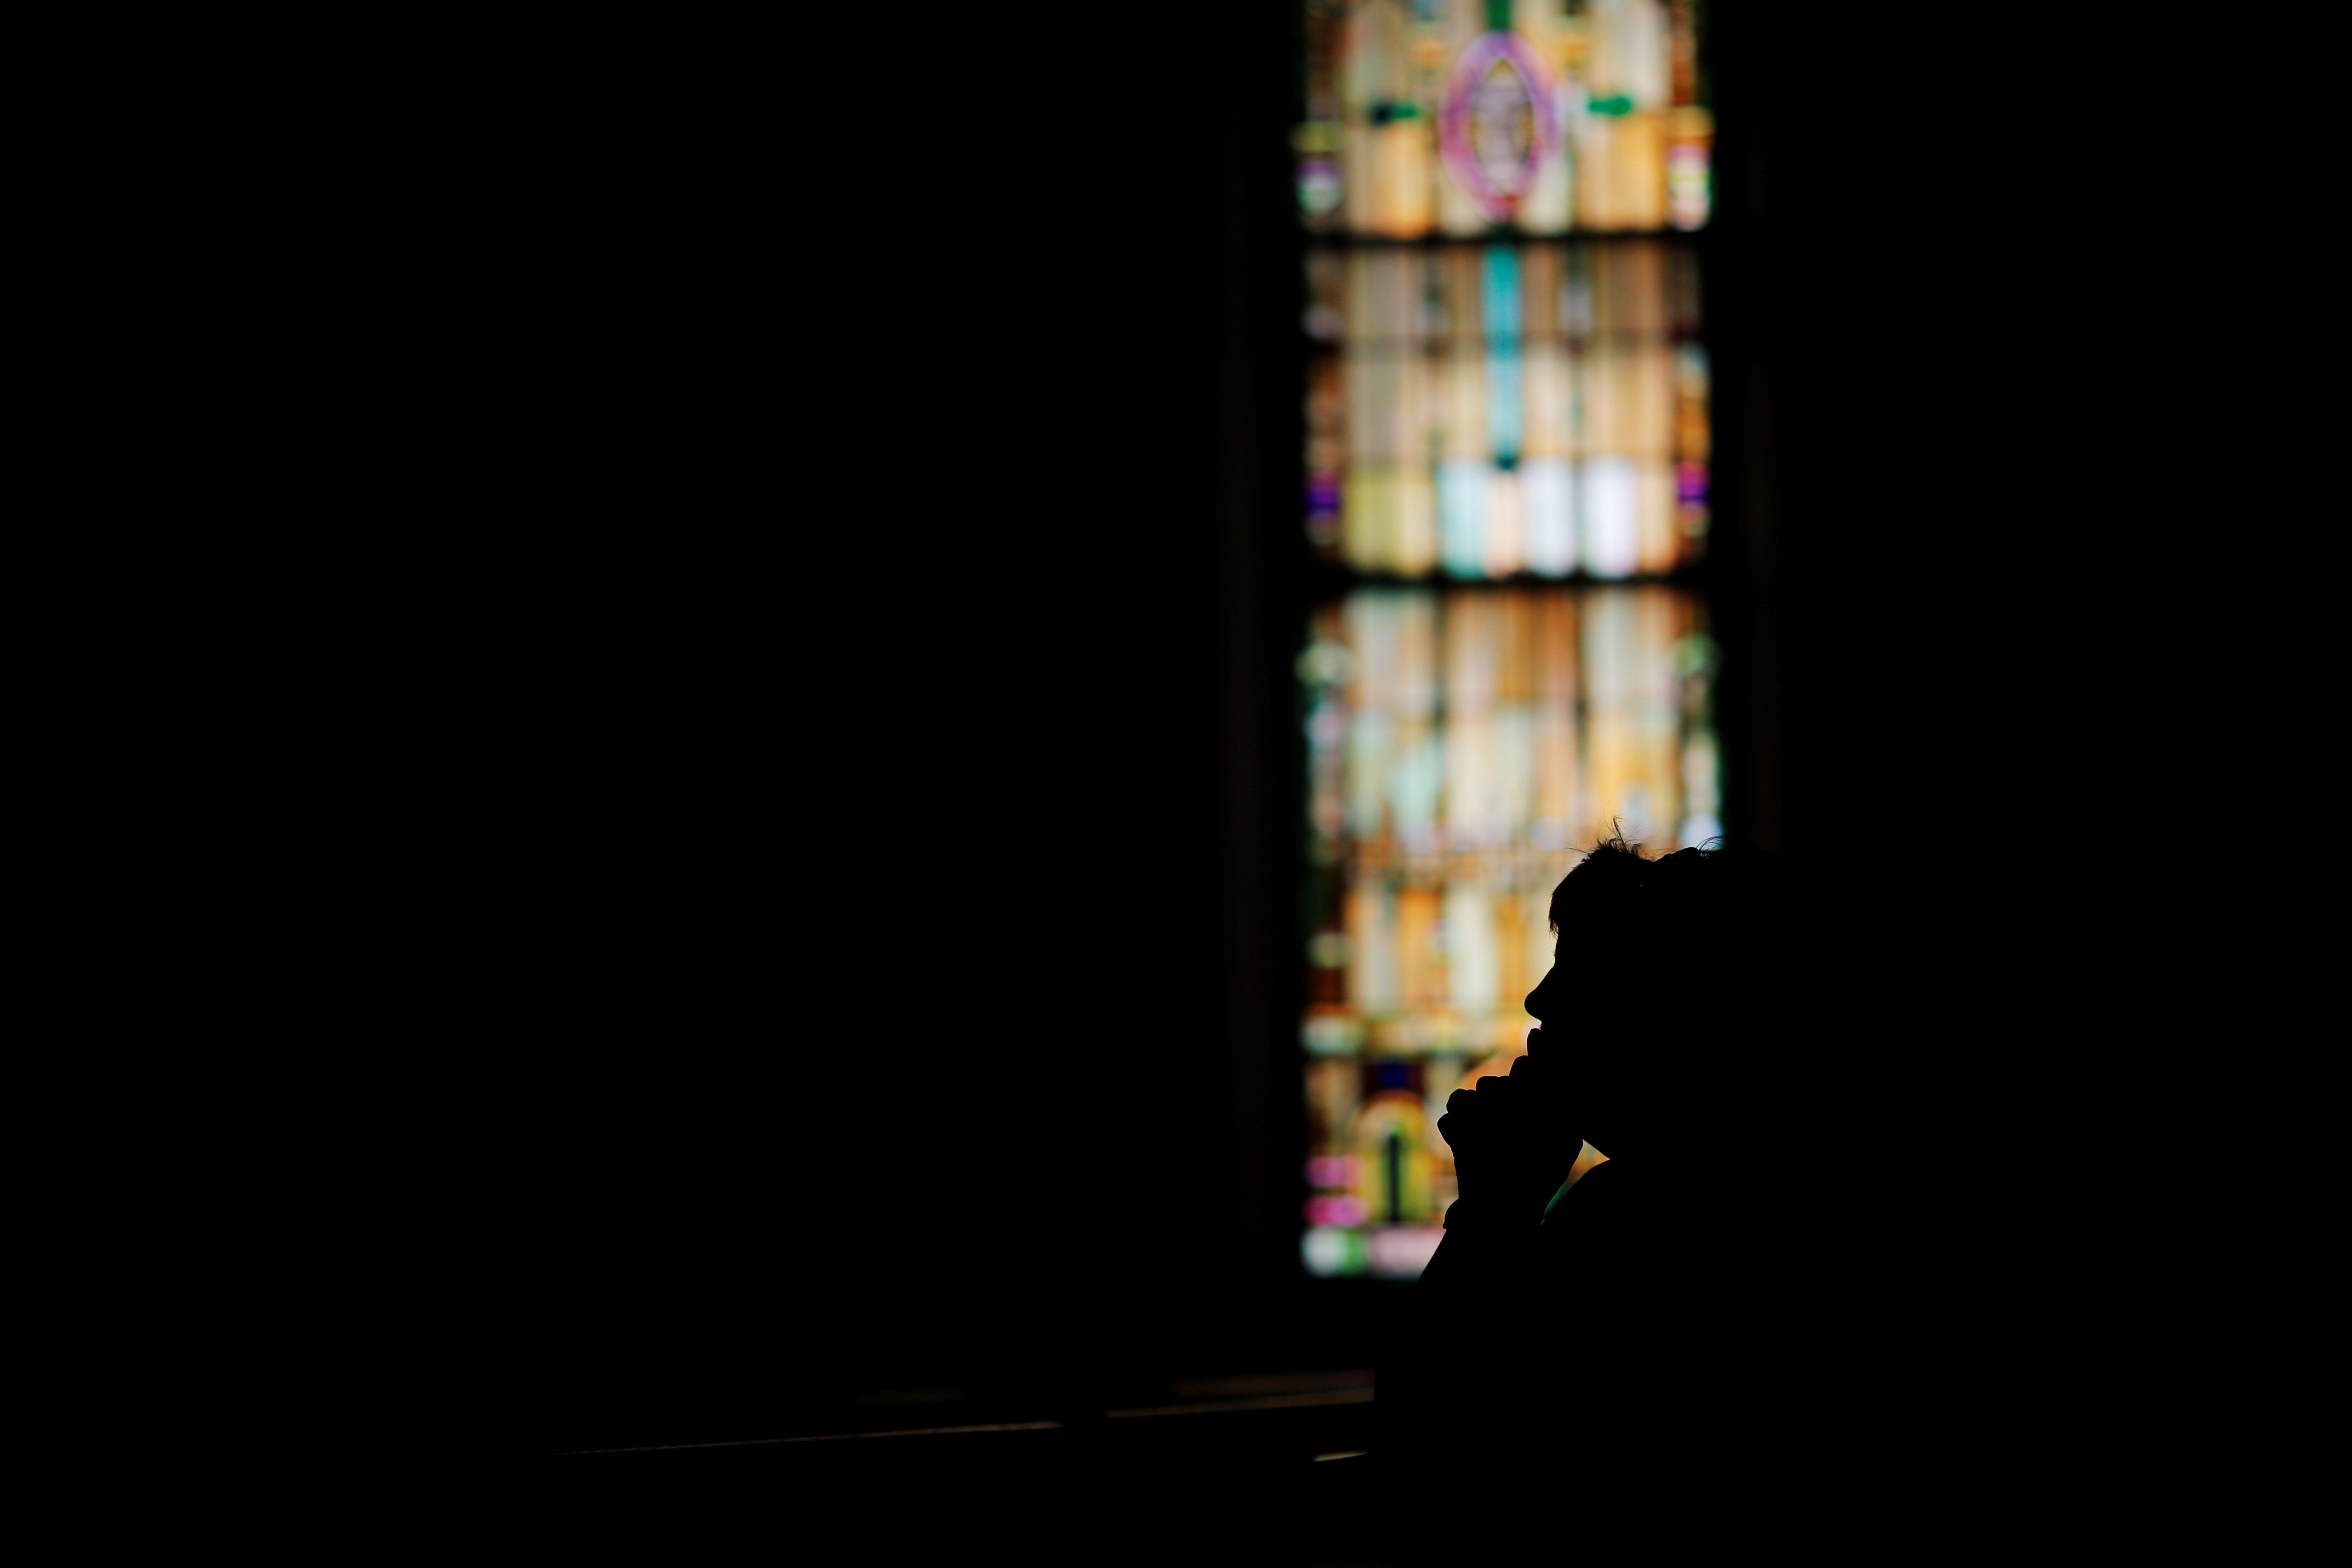 A woman prays at St. John's Church during a procession to carry a cross between the Catholic Churches of Quincy, Massachusetts, U.S., to pray the Stations of the Cross on Good Friday April 14, 2017. REUTERS/Brian Snyder